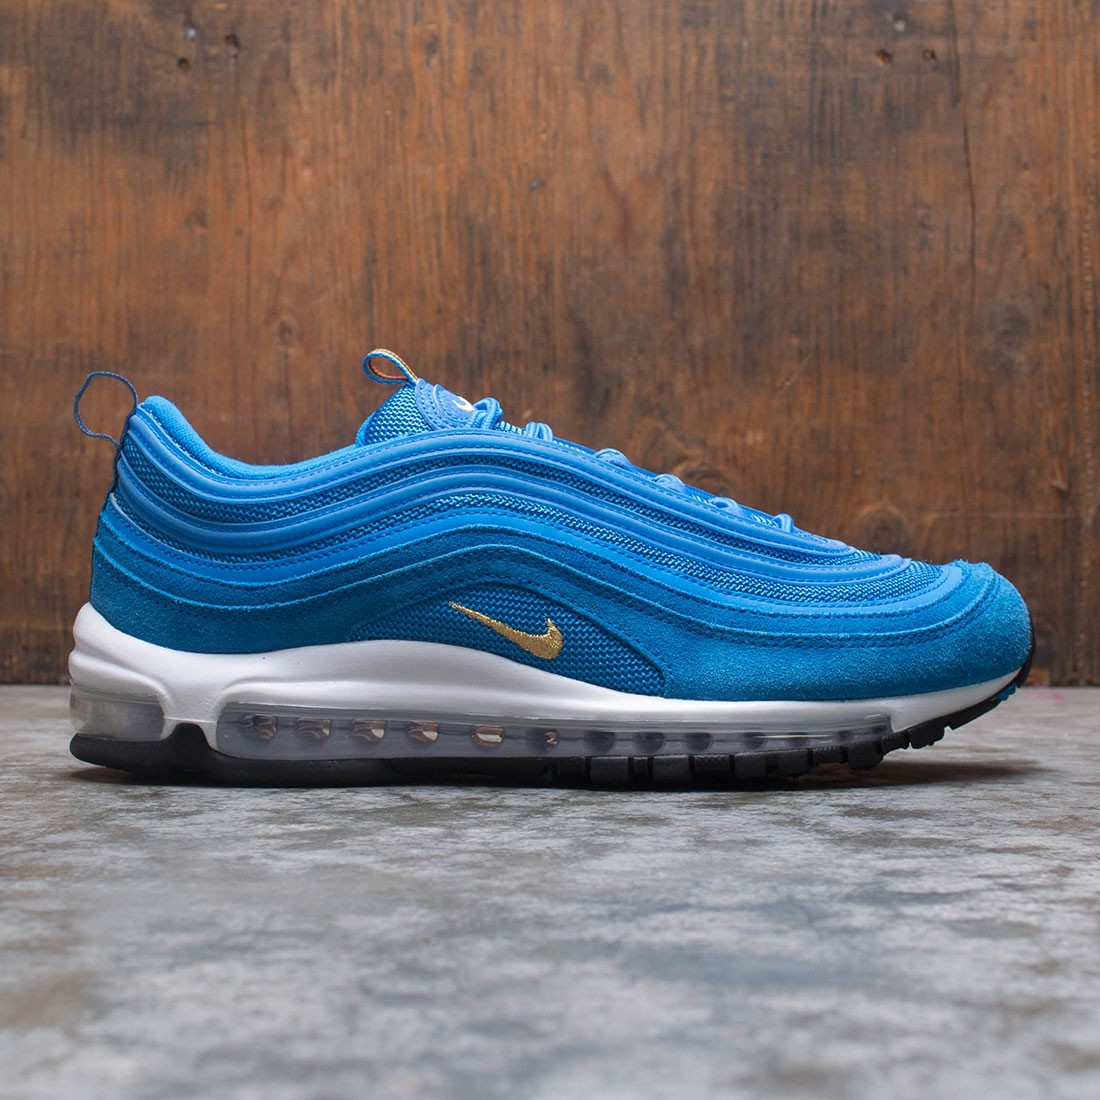 Nike Men Air Max 97 Photo Blue Metallic Gold White Black